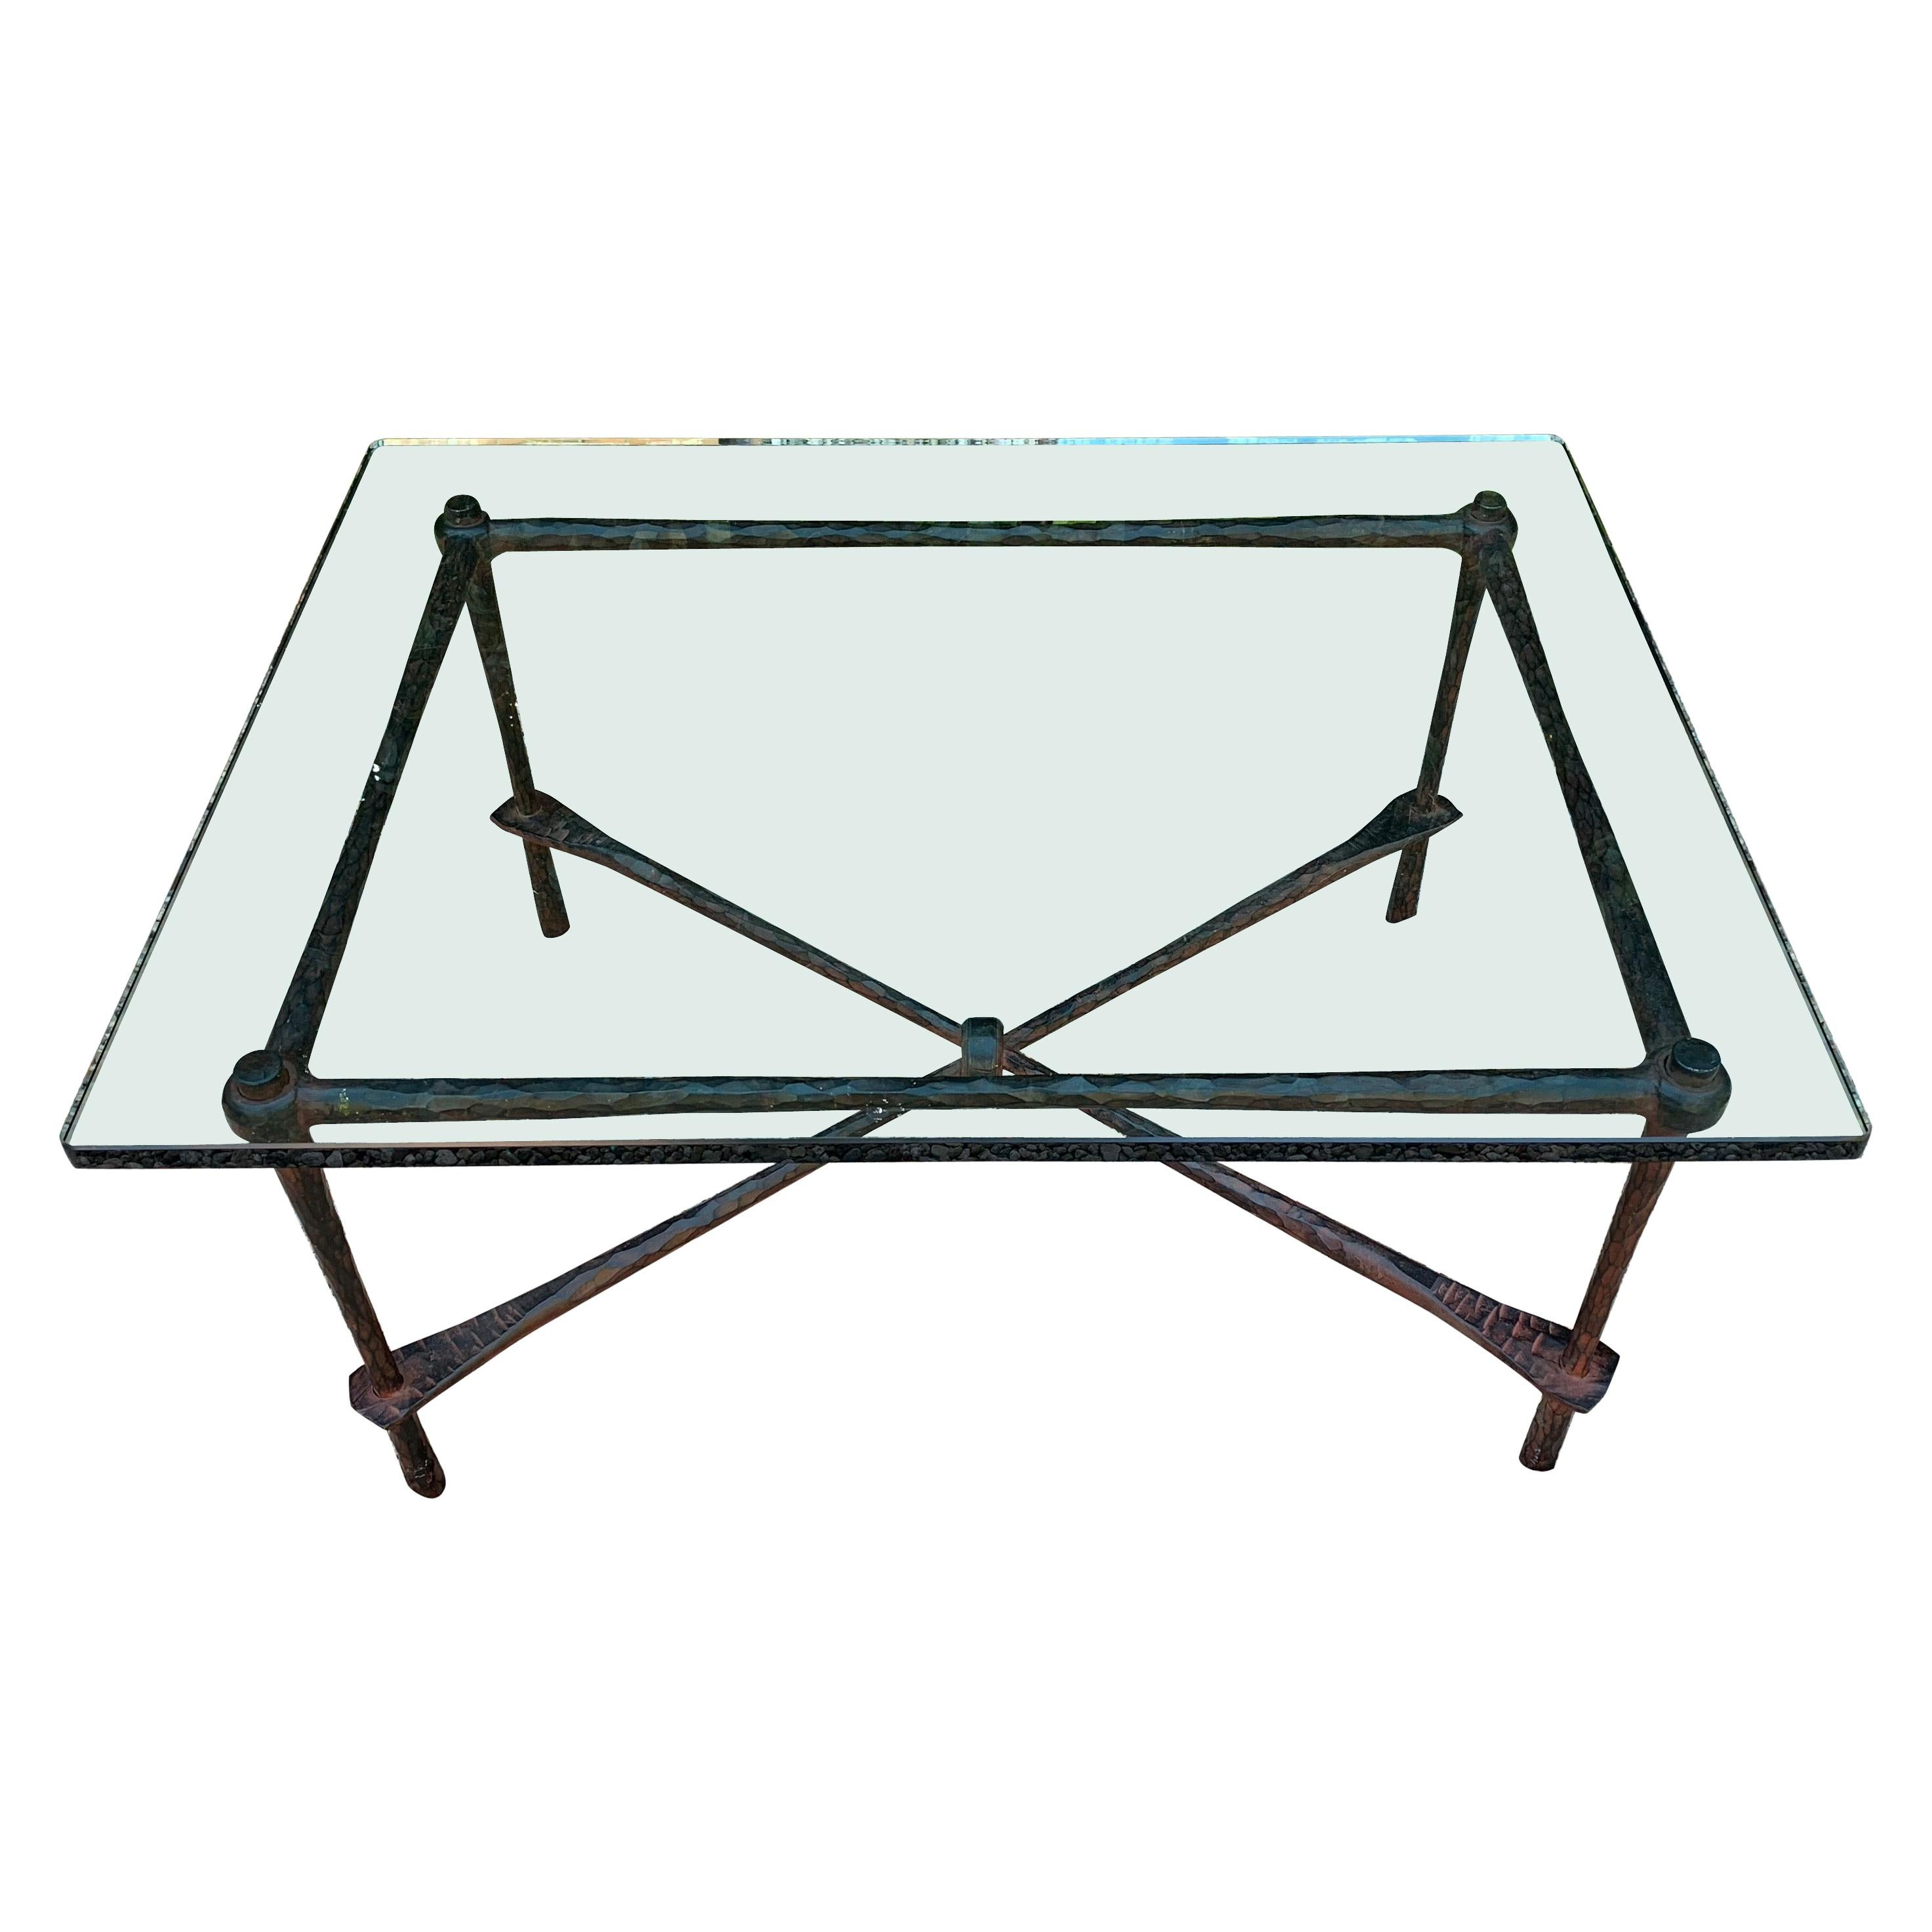 best sneakers a2752 94923 Cast Iron Coffee Tables - 68 For Sale on 1stdibs